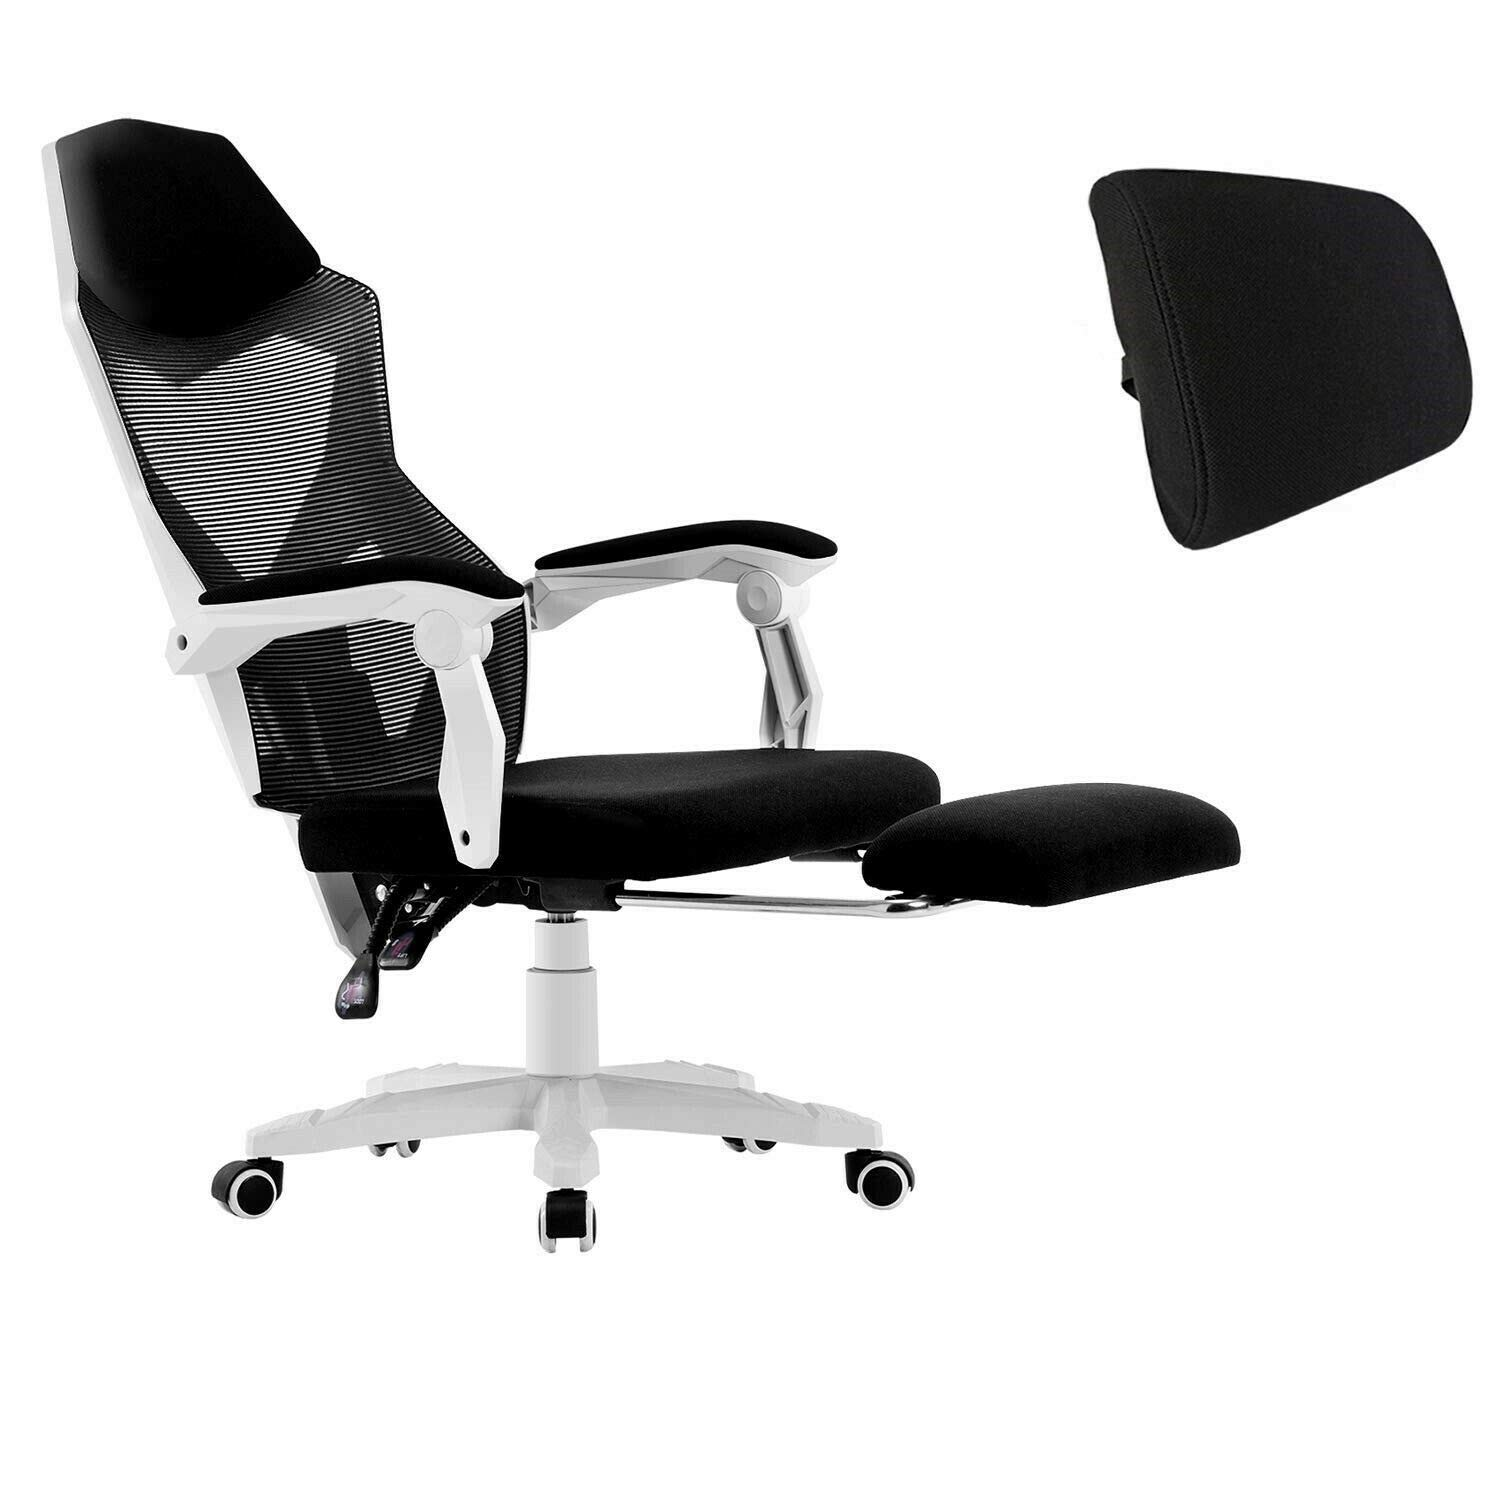 Ergonomic Office Chair High Back Adjustable Mesh Recliner Optional Footrest White2 0 With Footrest Amazon Com Au Home